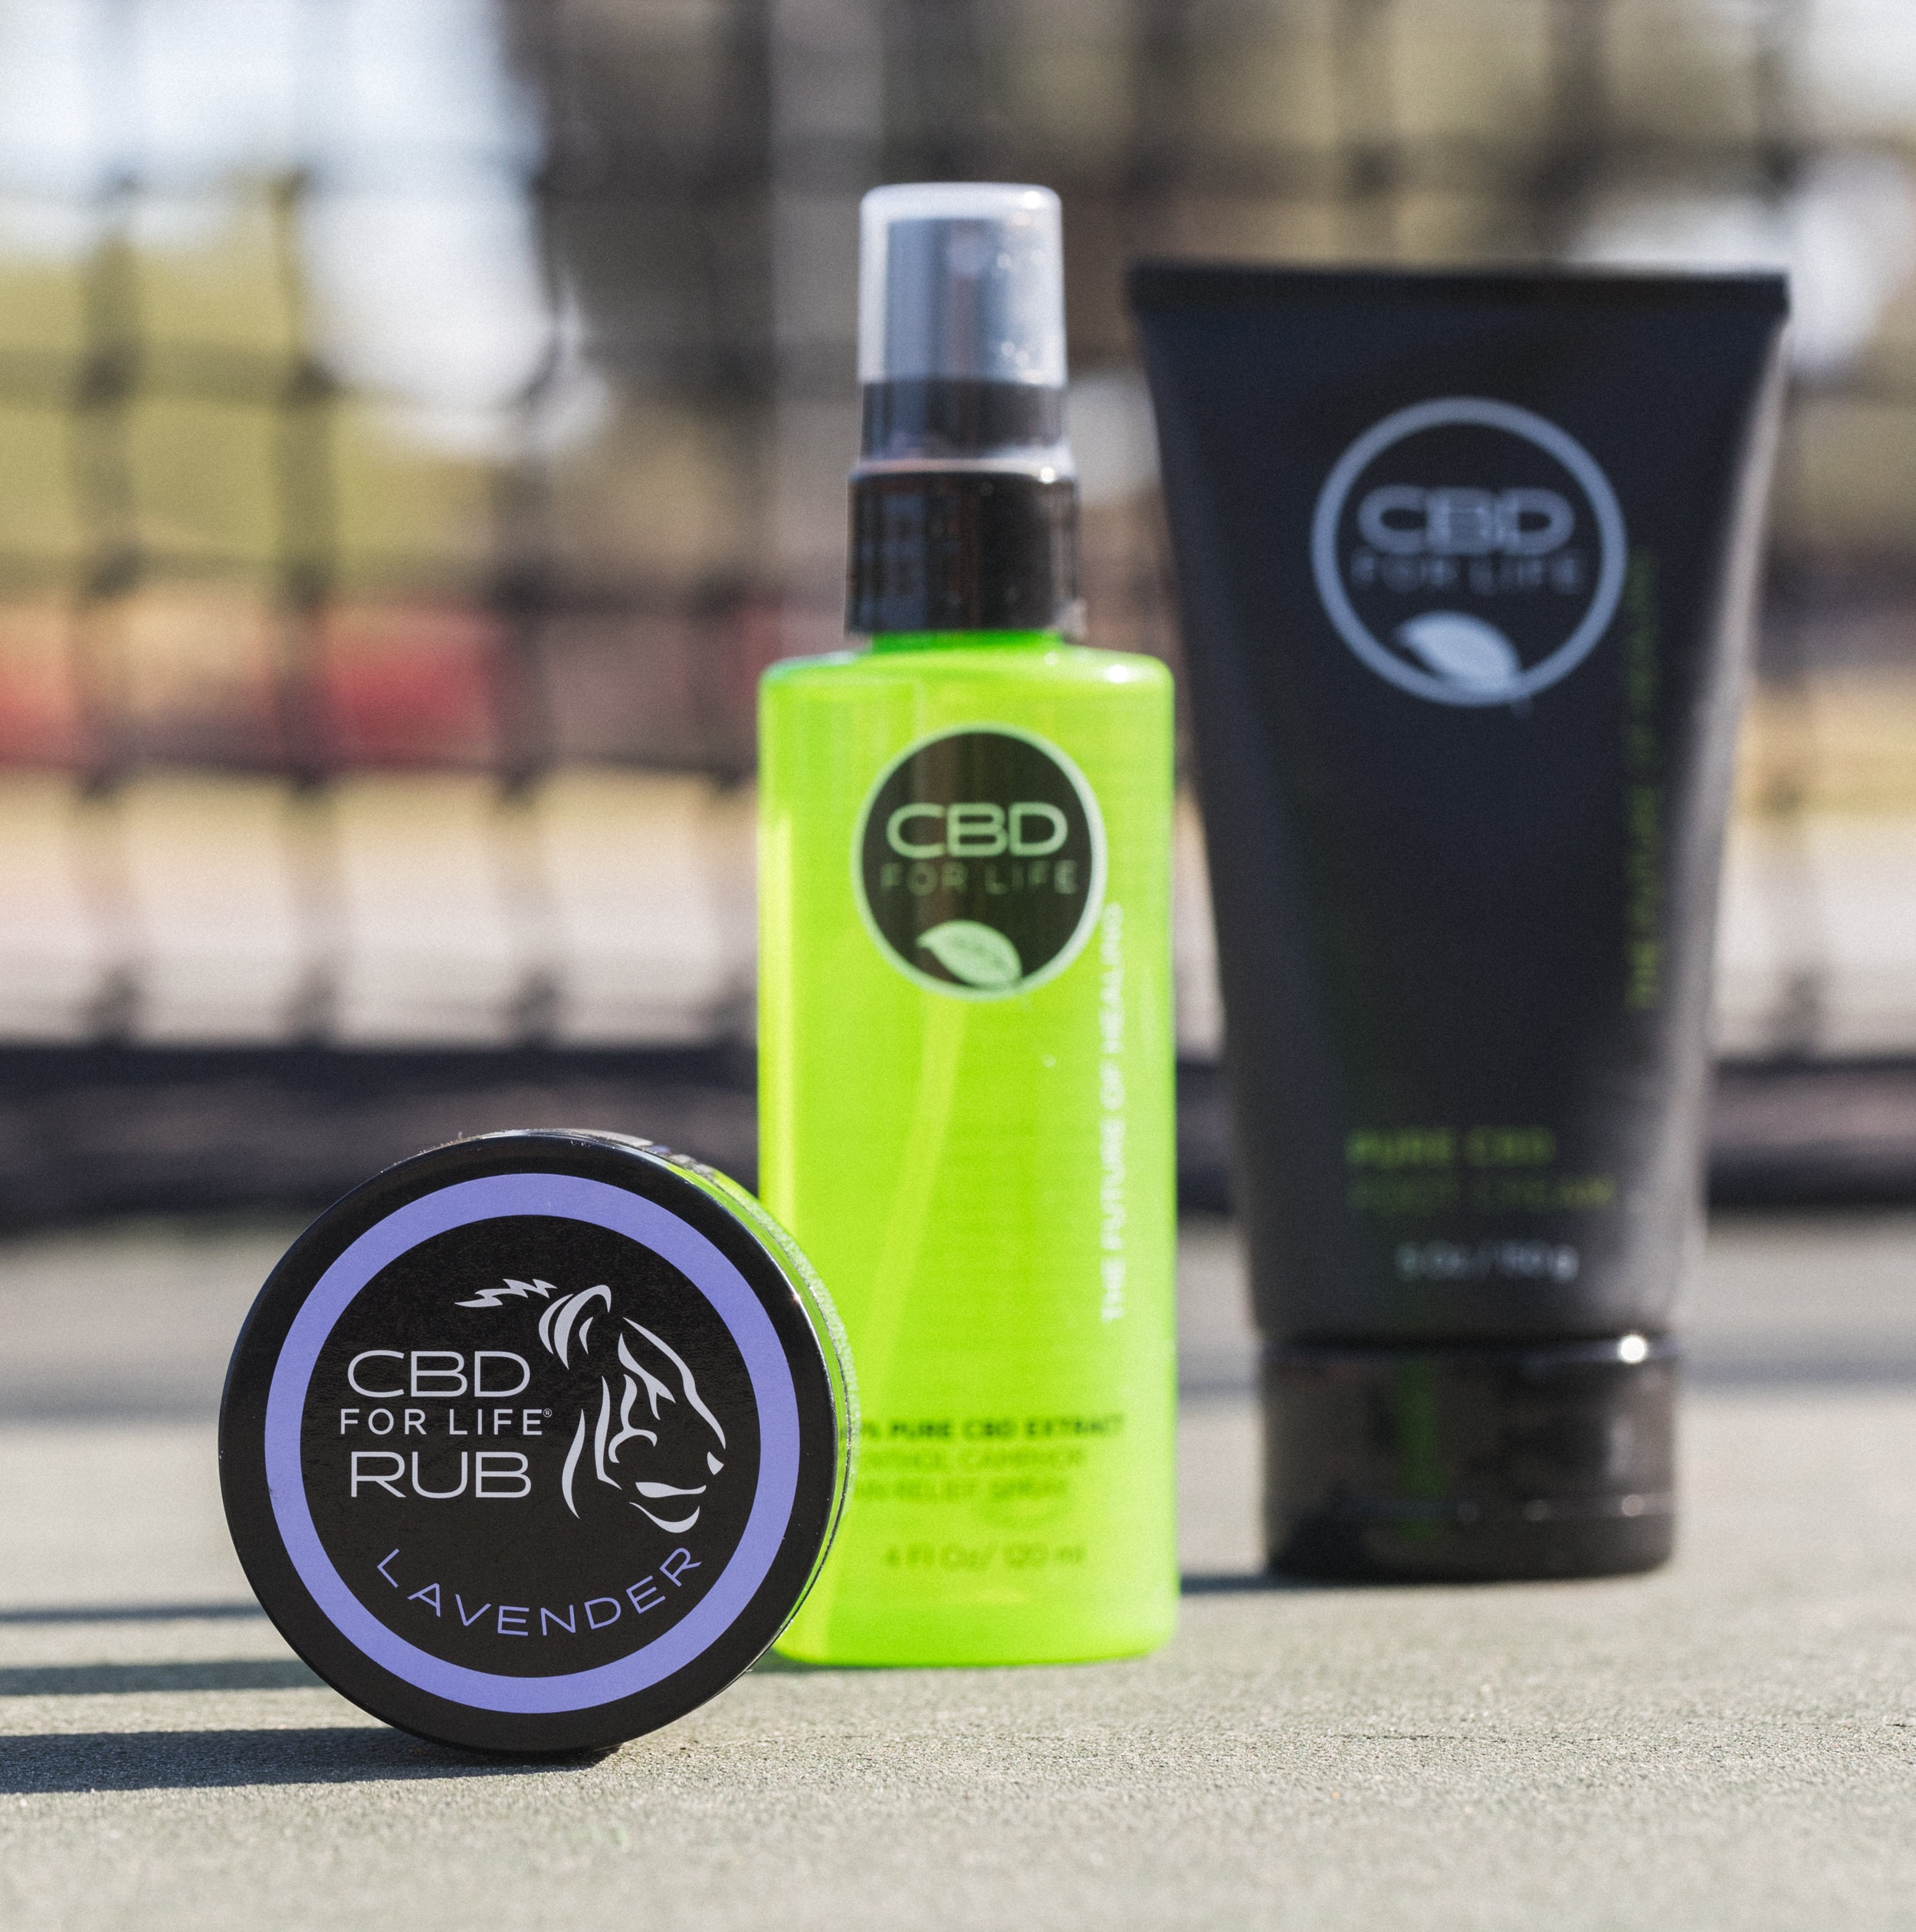 What's your favorite CBD for Life product?